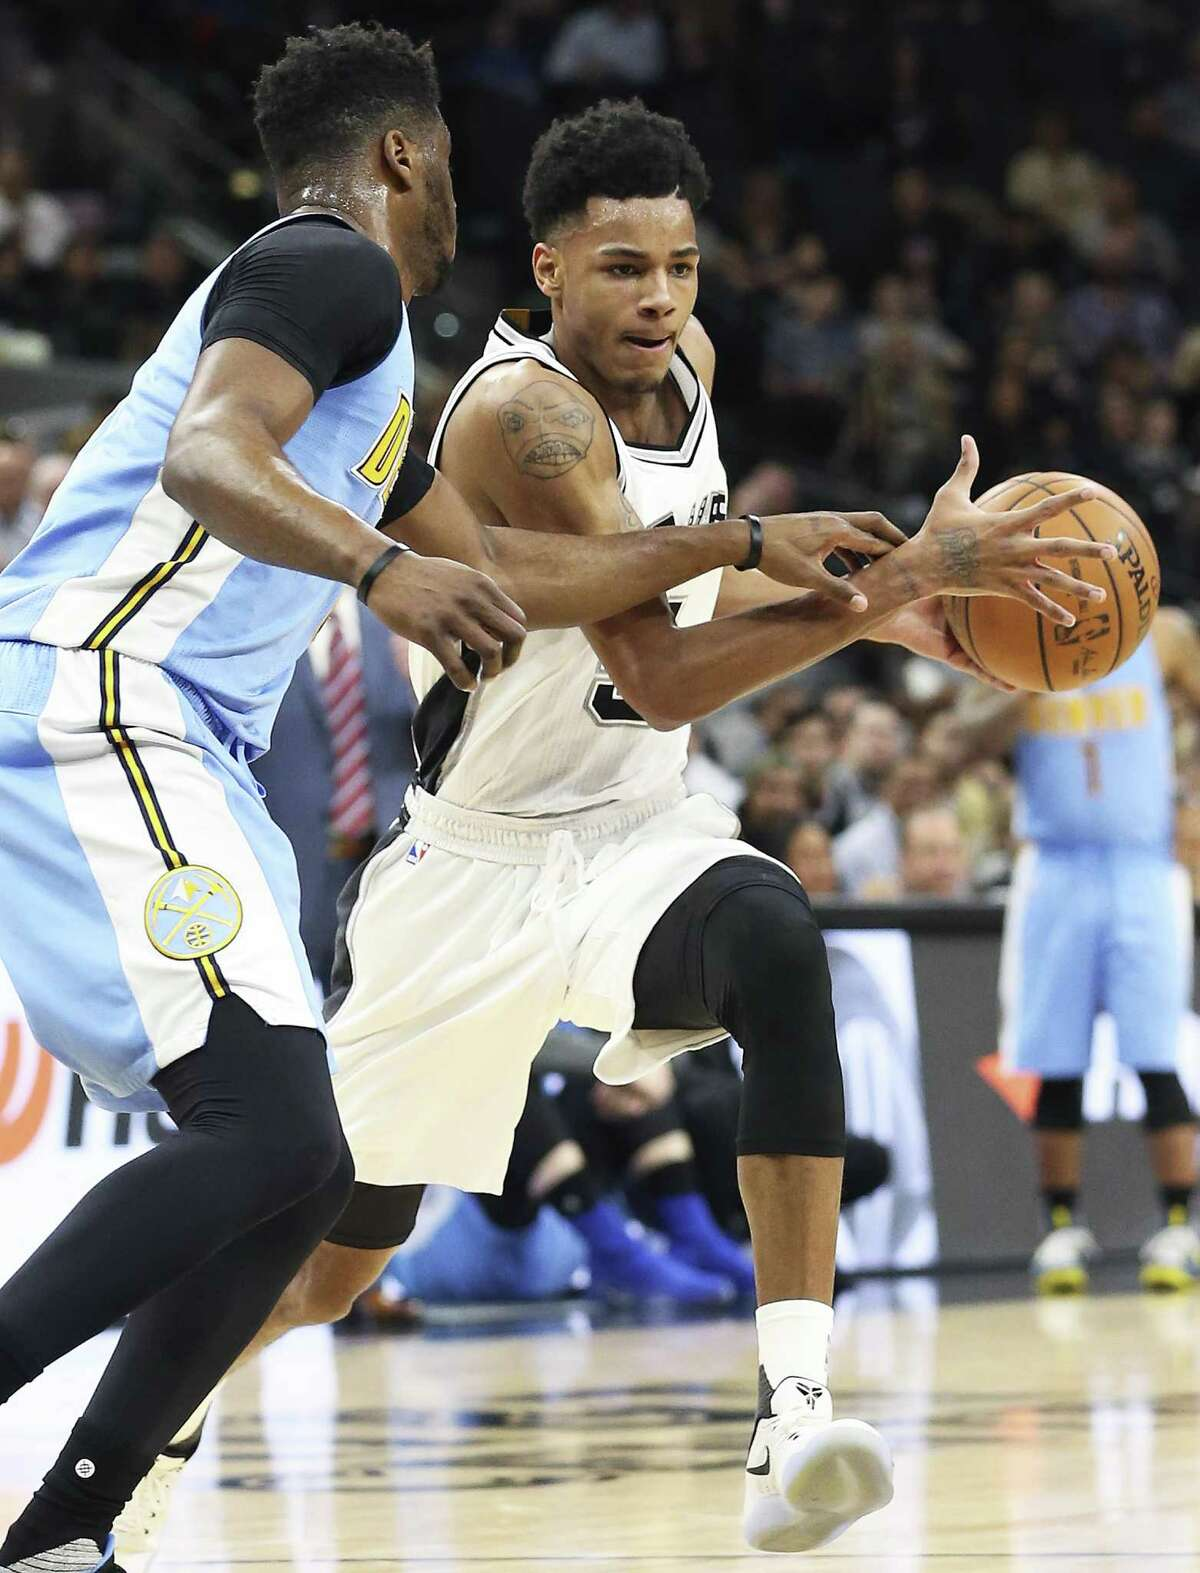 Dejounte Murray moves into the paint in the first half as the Spurs host Denver at the AT&T Center on Jan. 19, 2017.